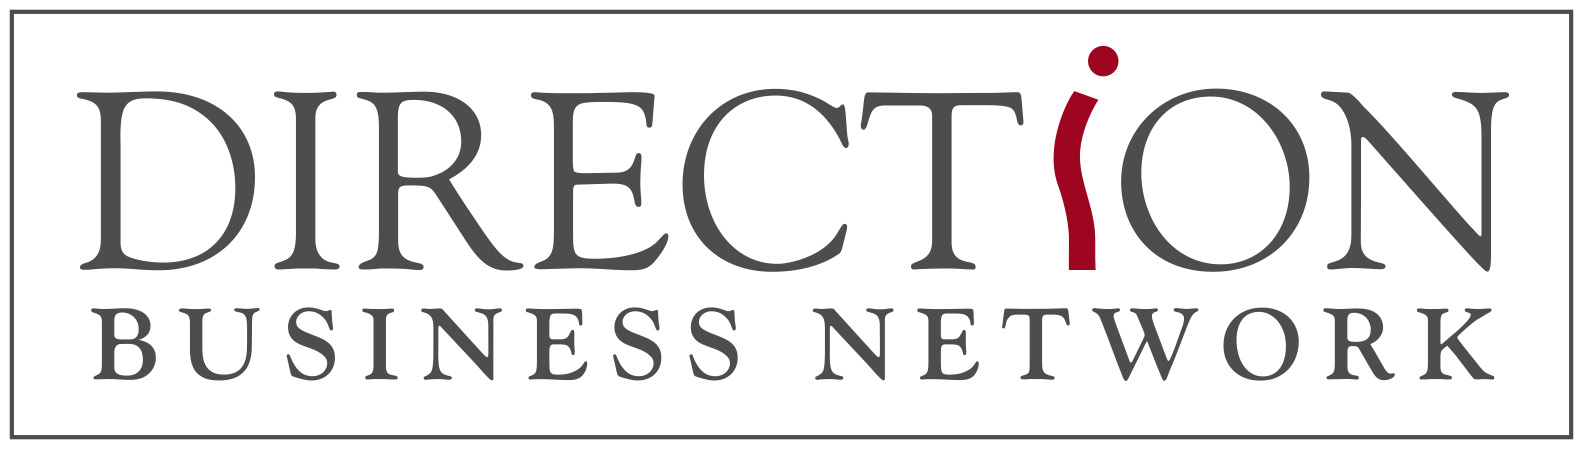 DIRECTION BUSINESS NETWORK logo_out